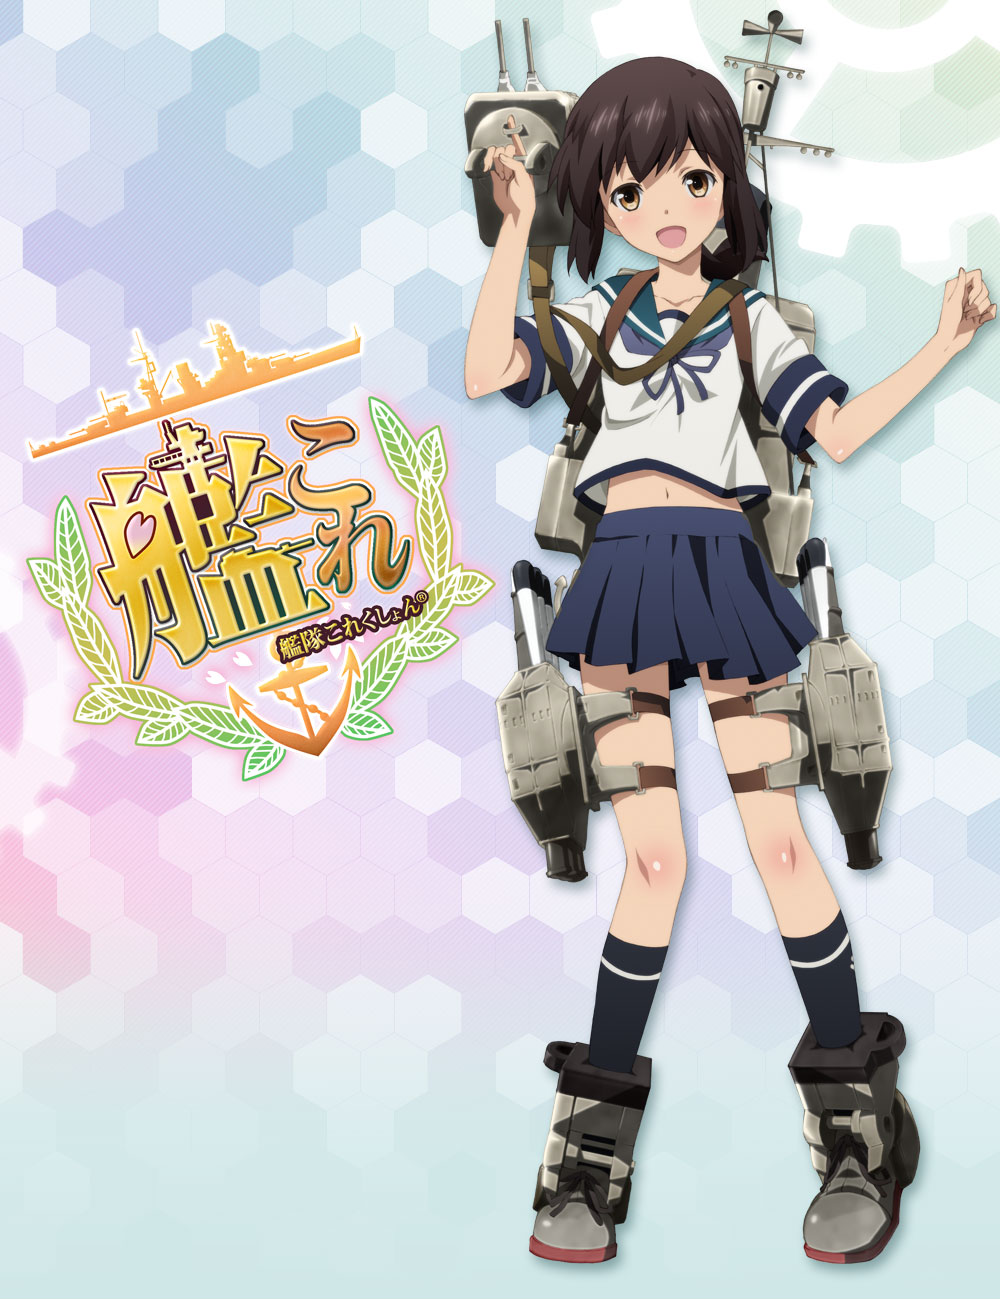 New Kantai Collection Kan Colle Anime Visuals & Character Designs Pic 2